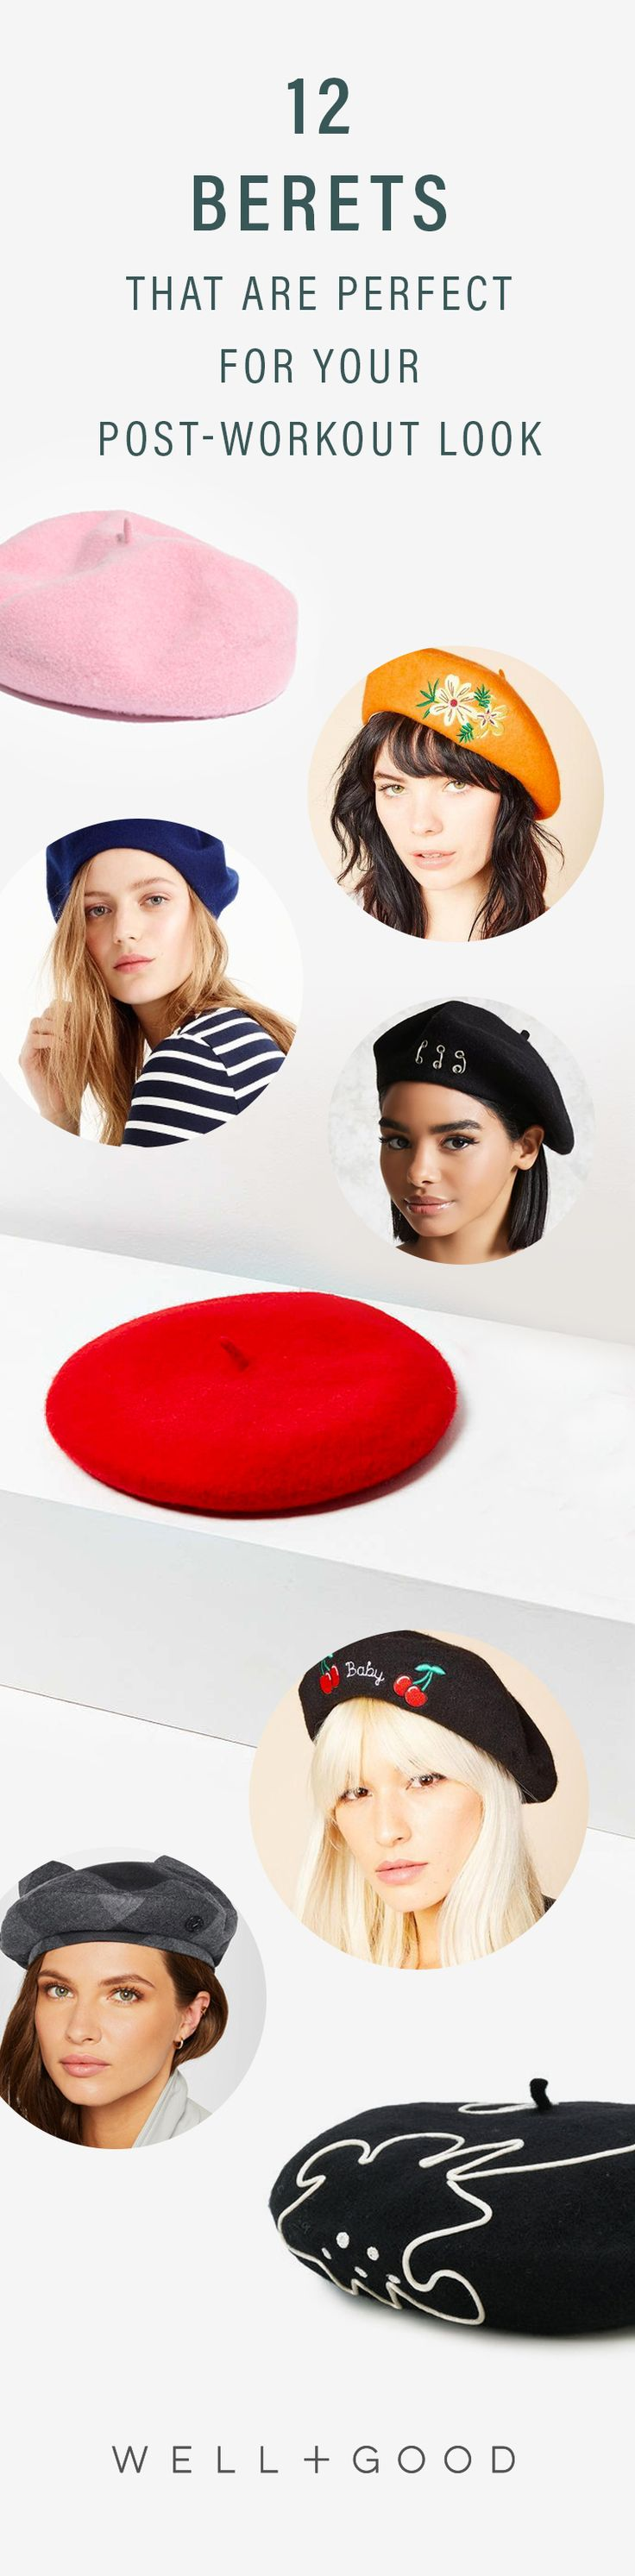 12 berets that are perfect for post - workout hair